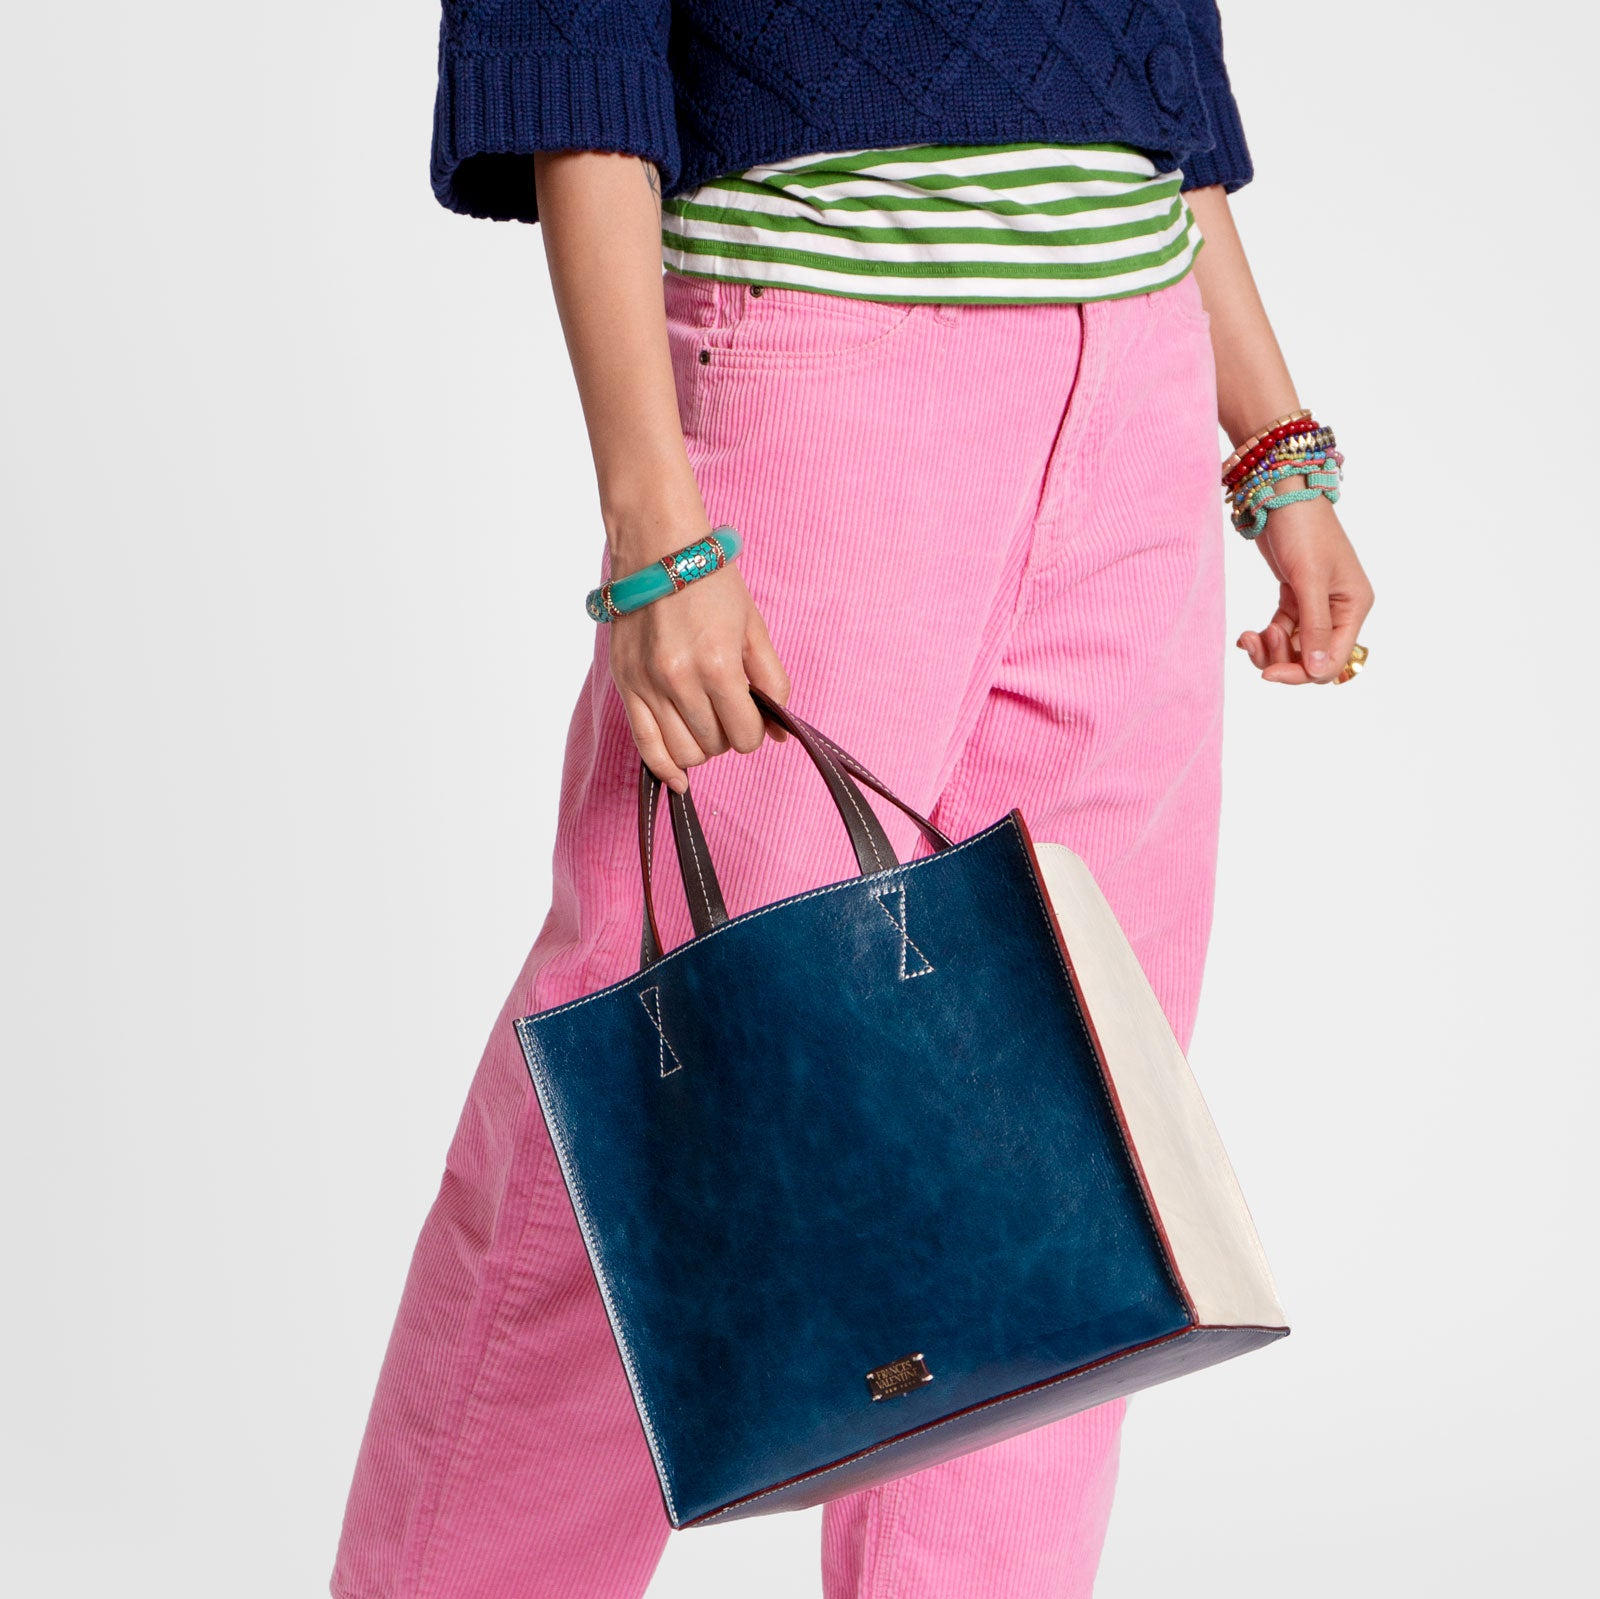 Margo Tote Naplak Leather Navy Oyster